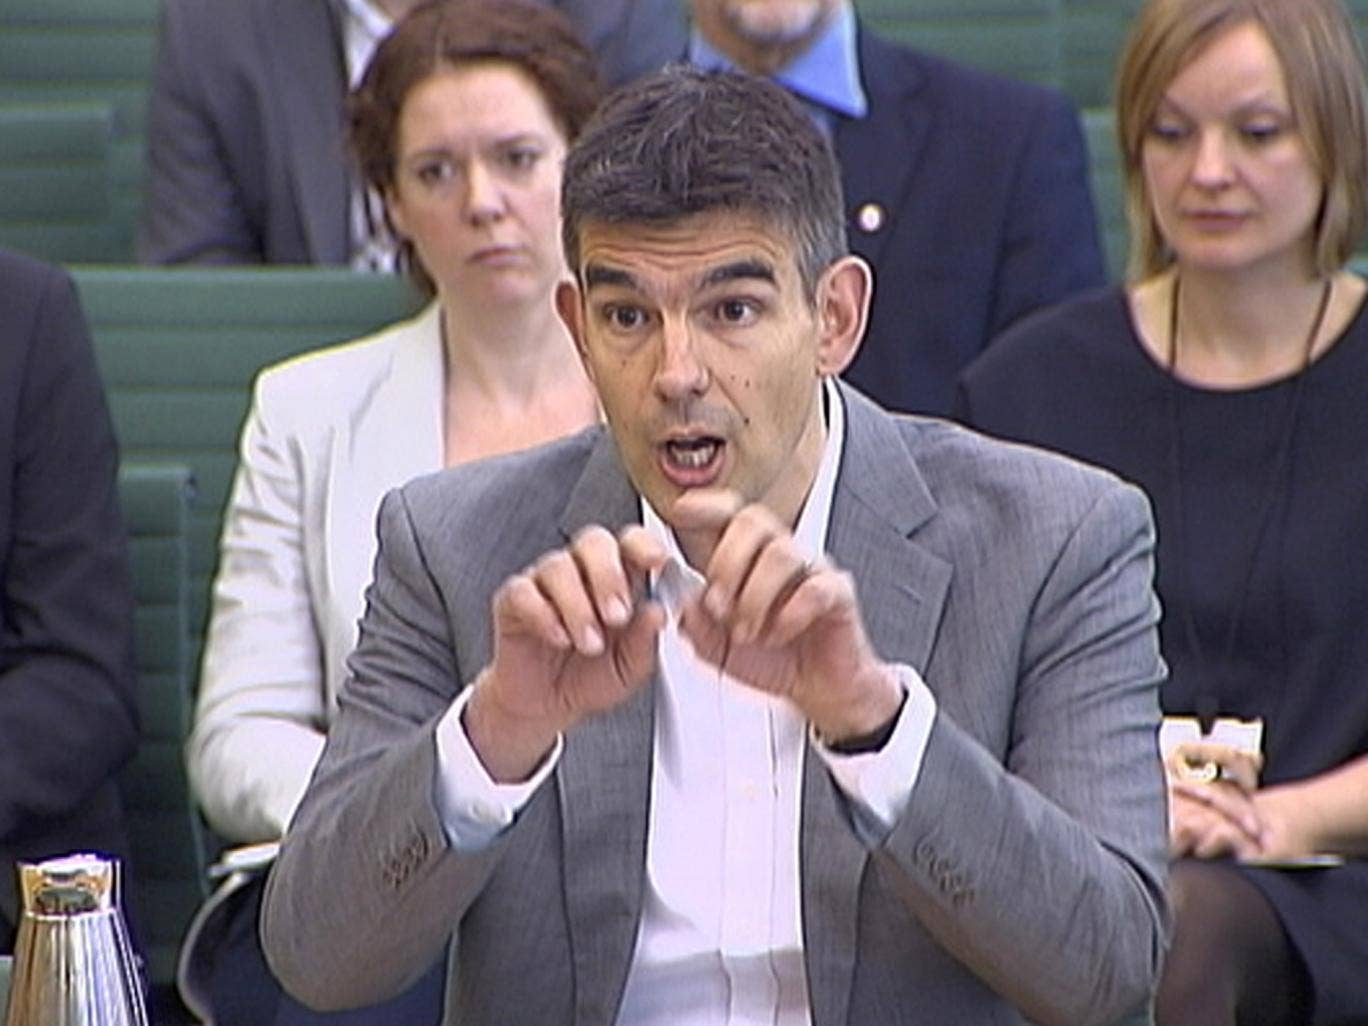 16 May 2013: Google's Northern Europe boss, Matt Brittin, testifies to the British parliamentary Public Accounts Committee about their taxation practices in London